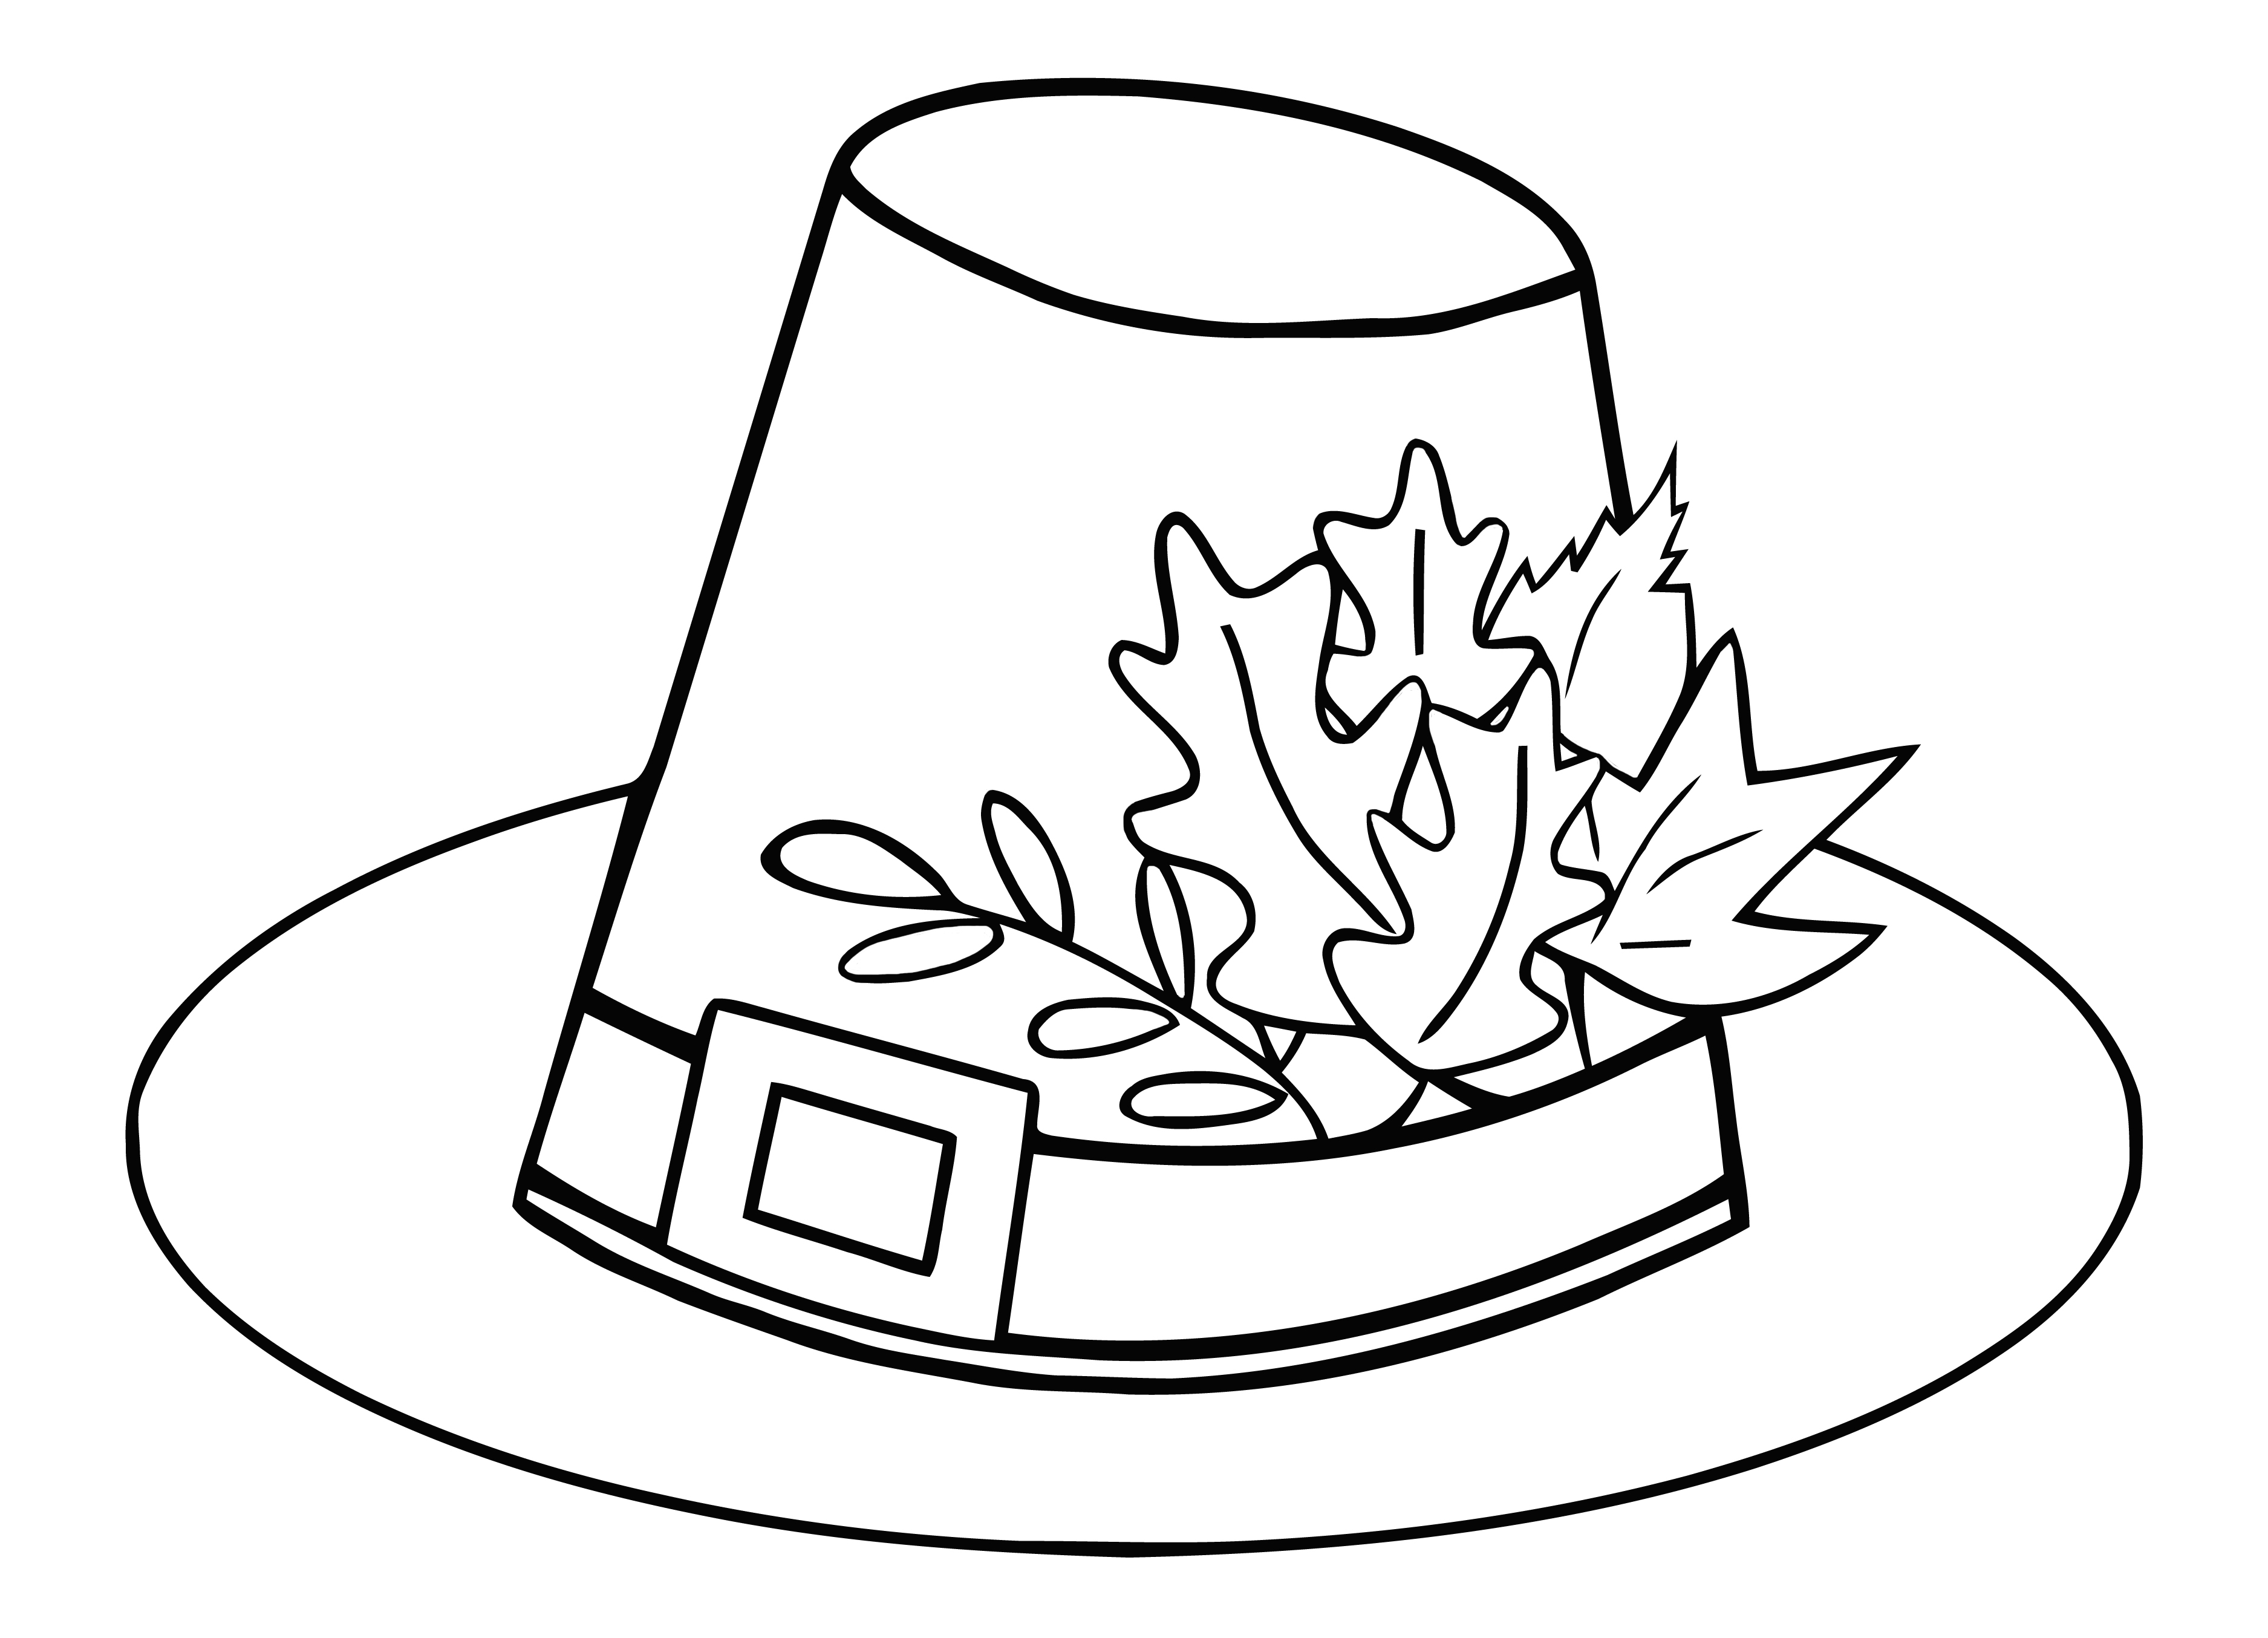 Turkey clip art coloring page. Improved fall leaves pages